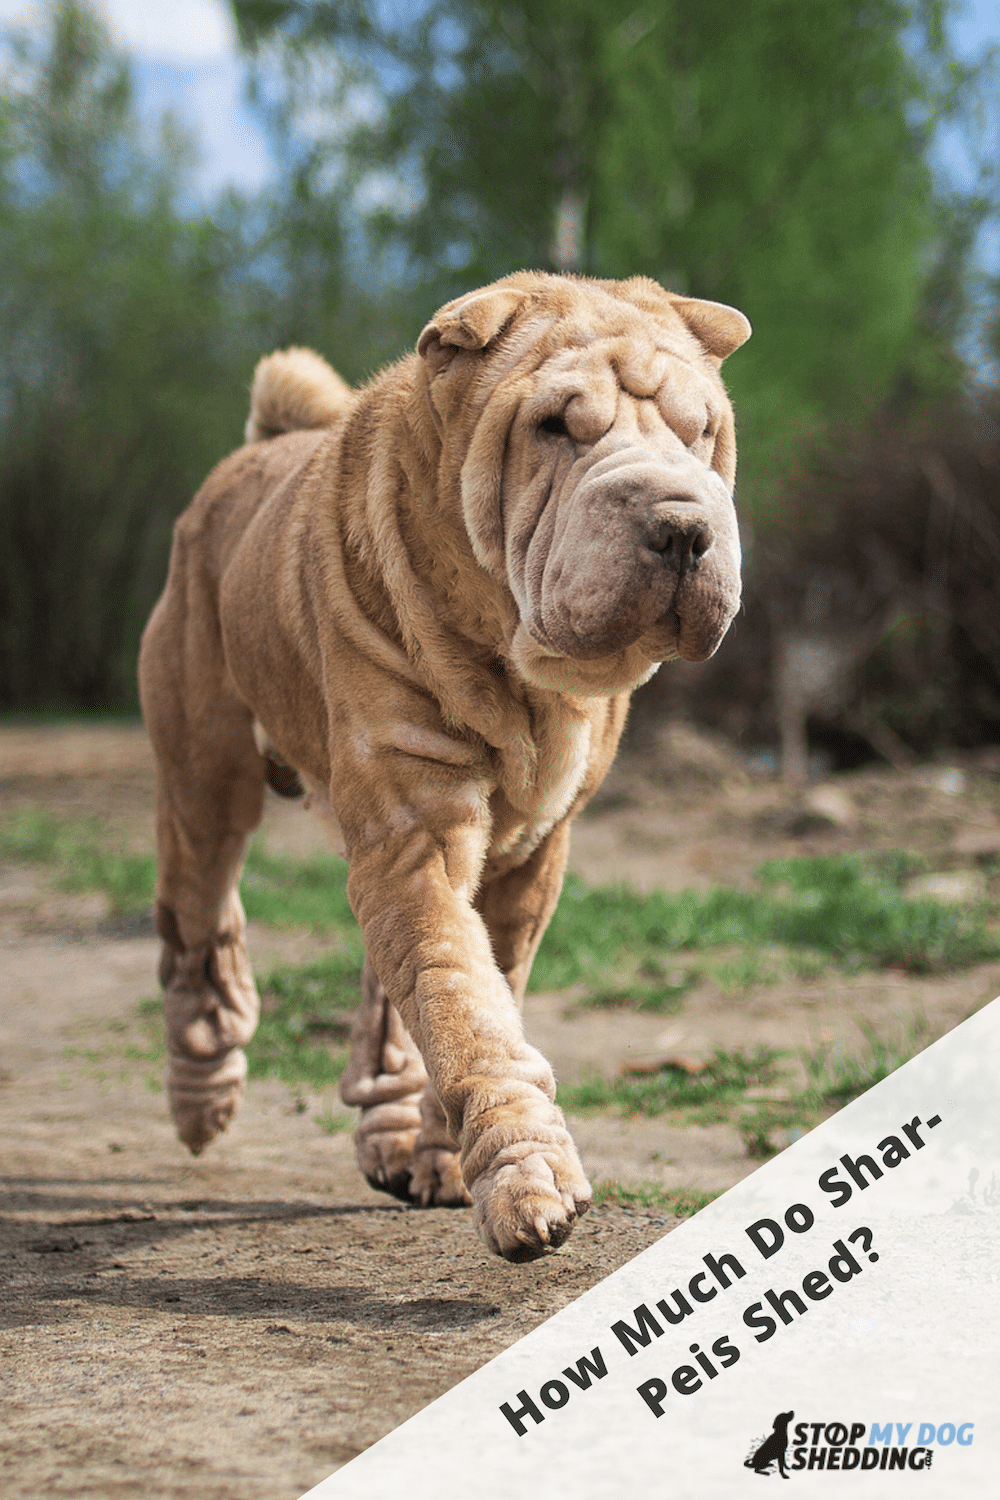 Do Chinese Shar-Peis Shed?